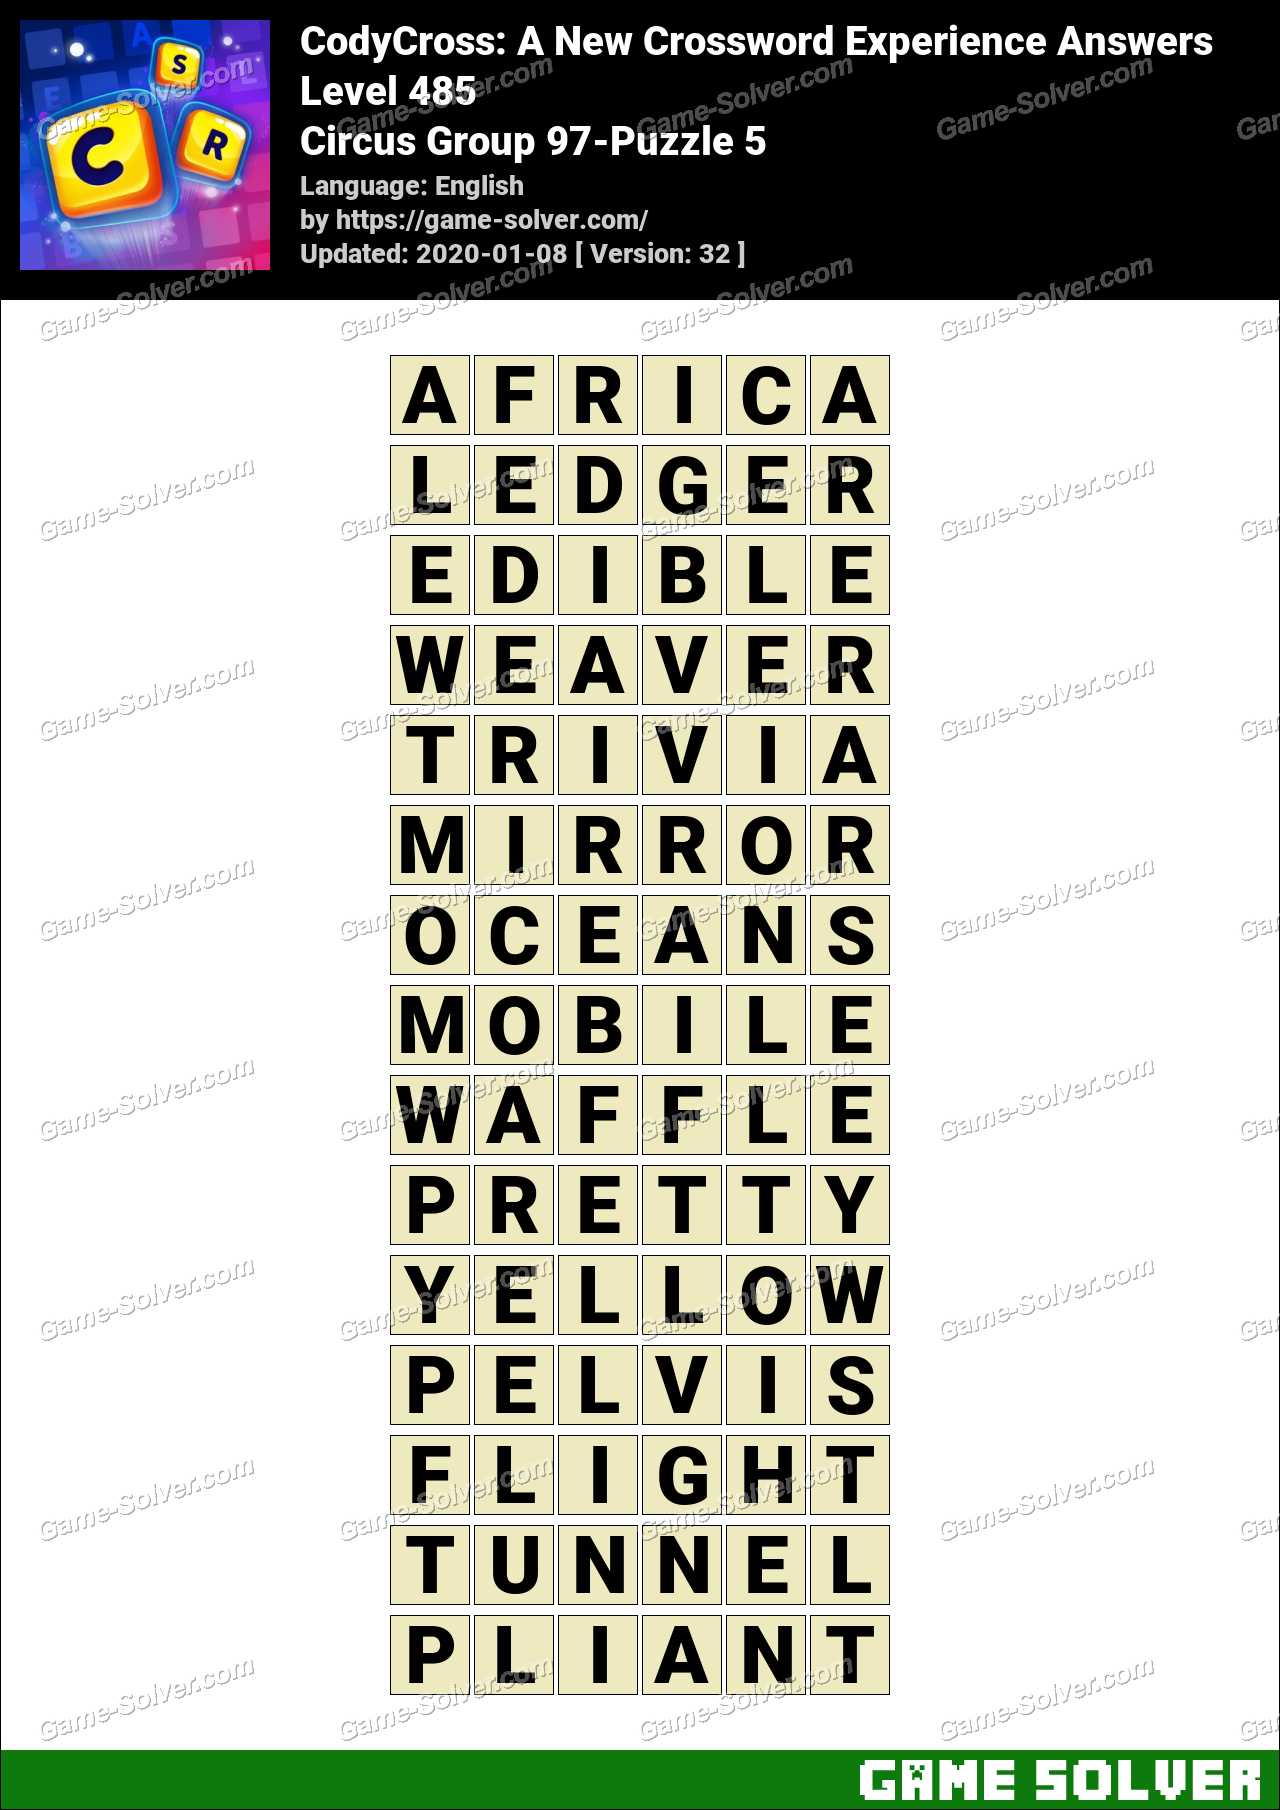 CodyCross Circus Group 97-Puzzle 5 Answers